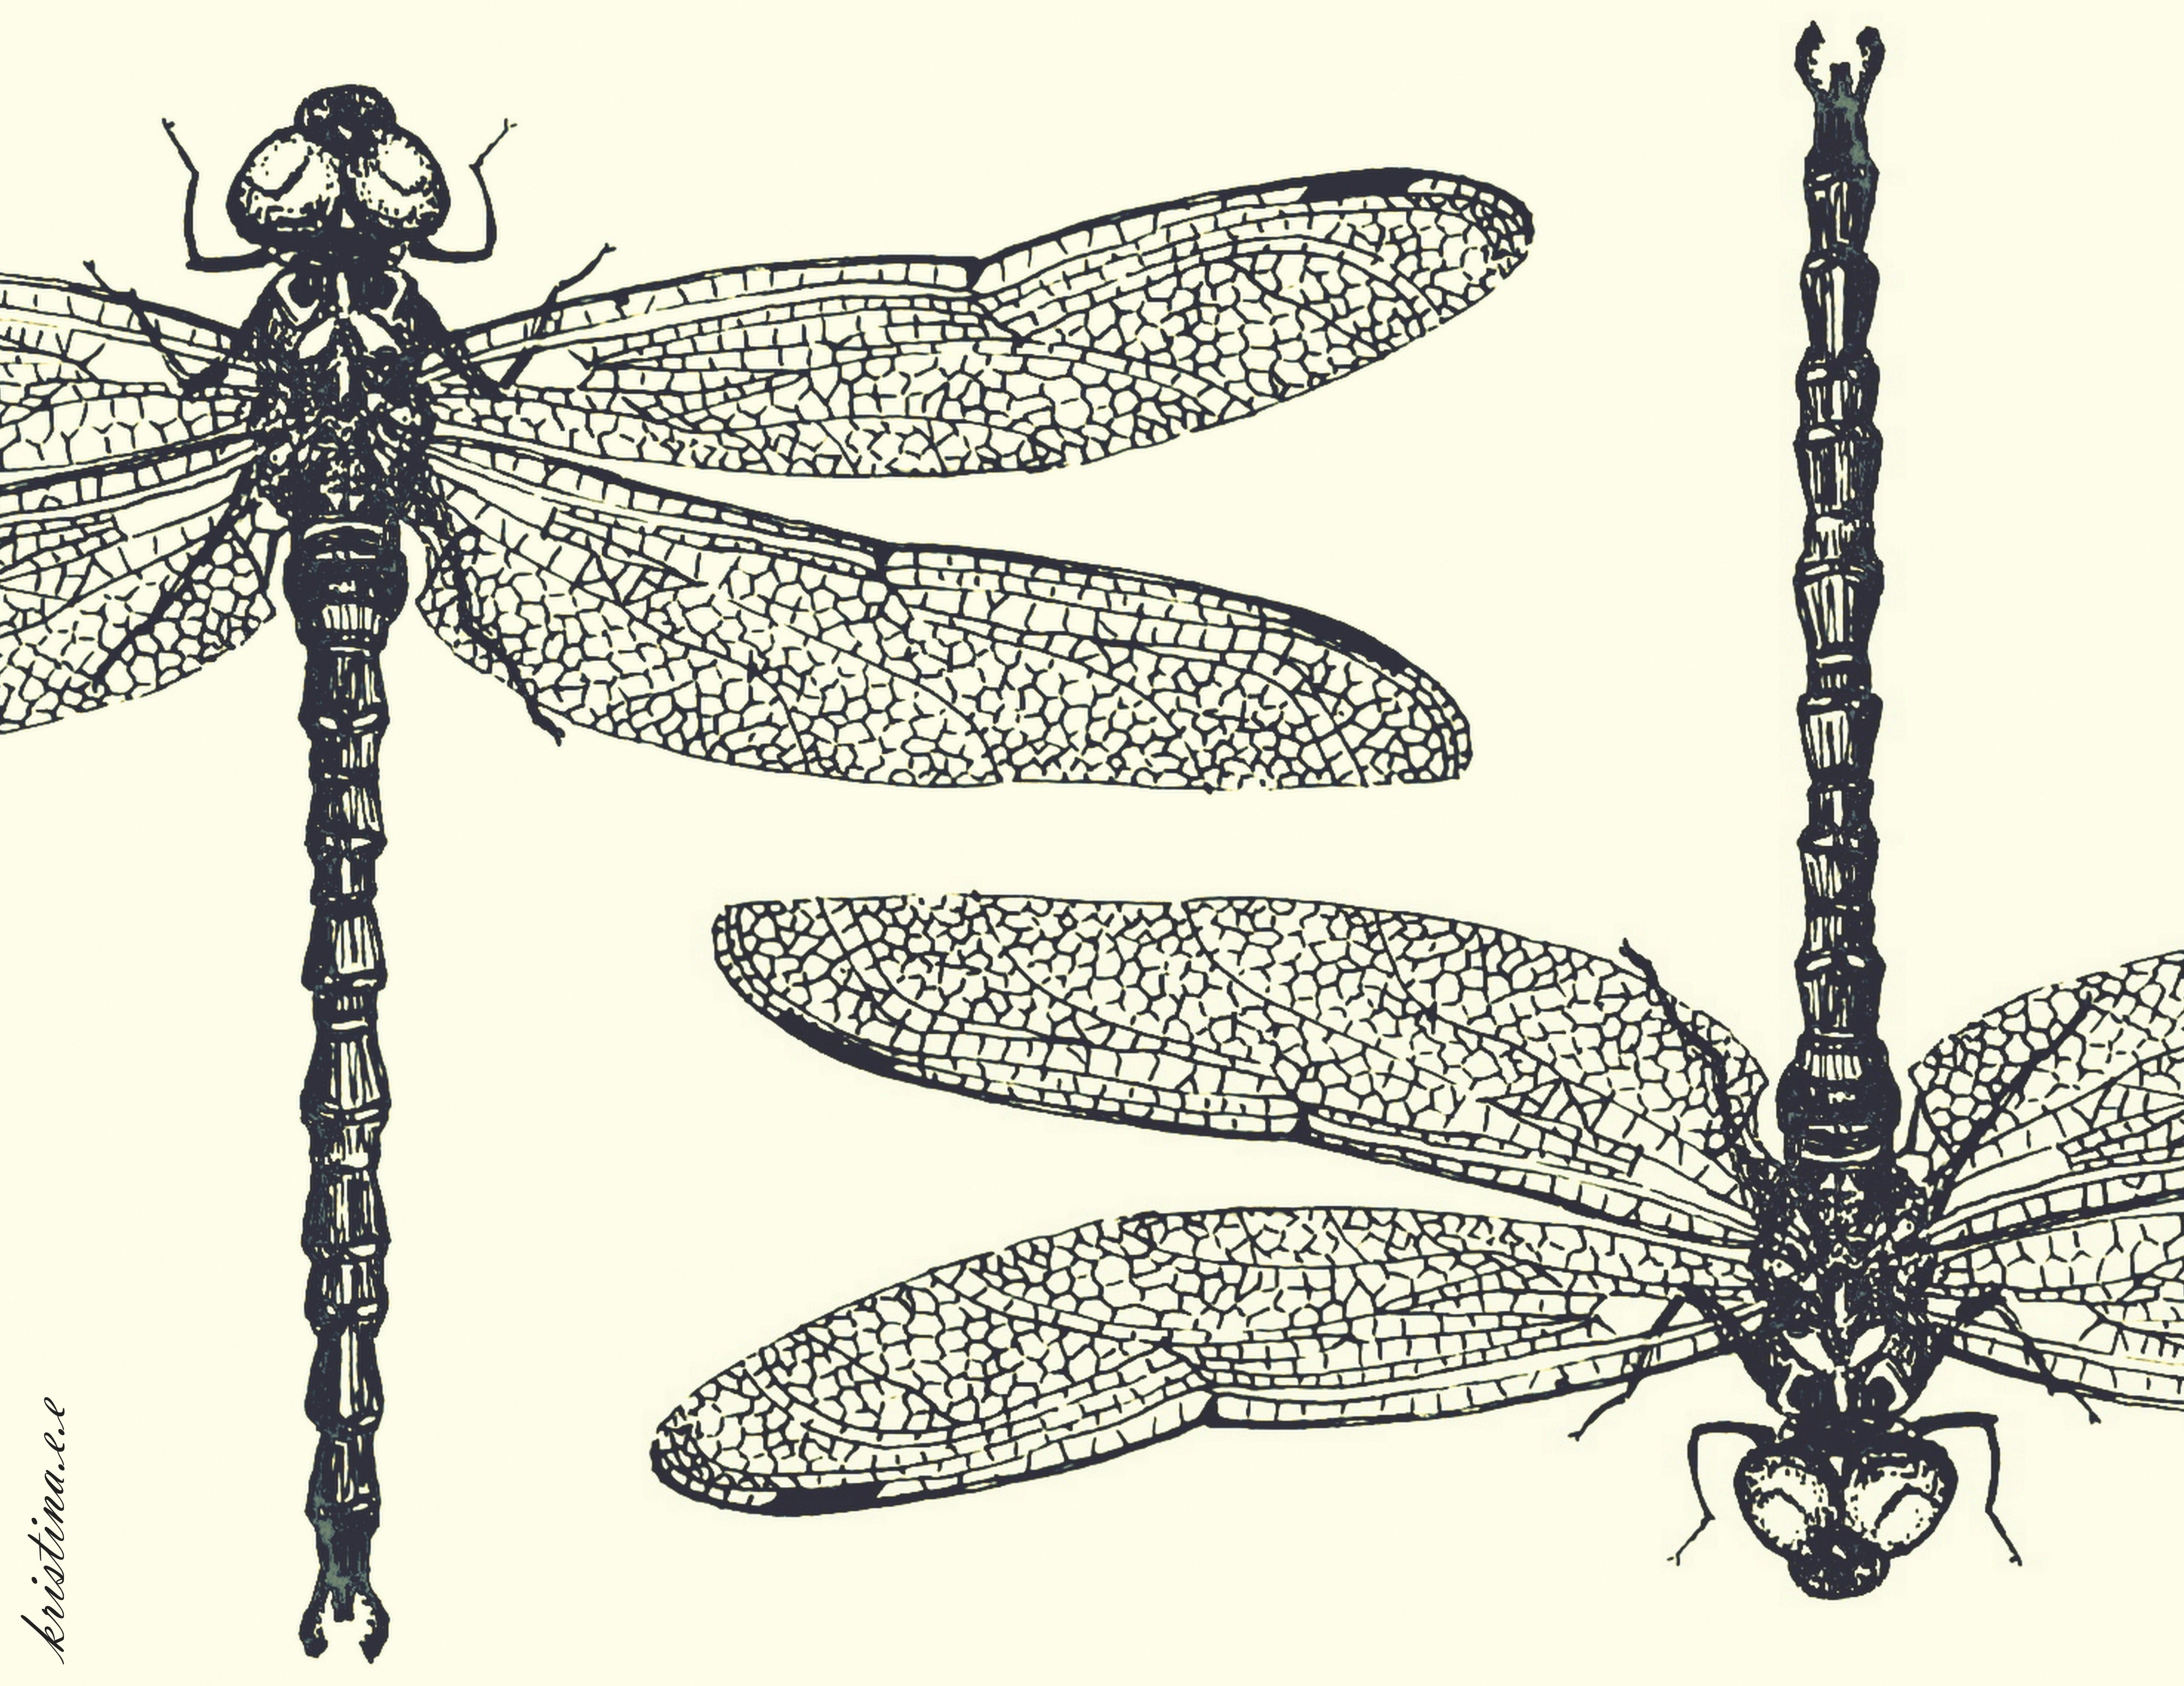 dragonflies eye diagram how to wire up driving lights dragonfly drawing butterflies and dragon flies